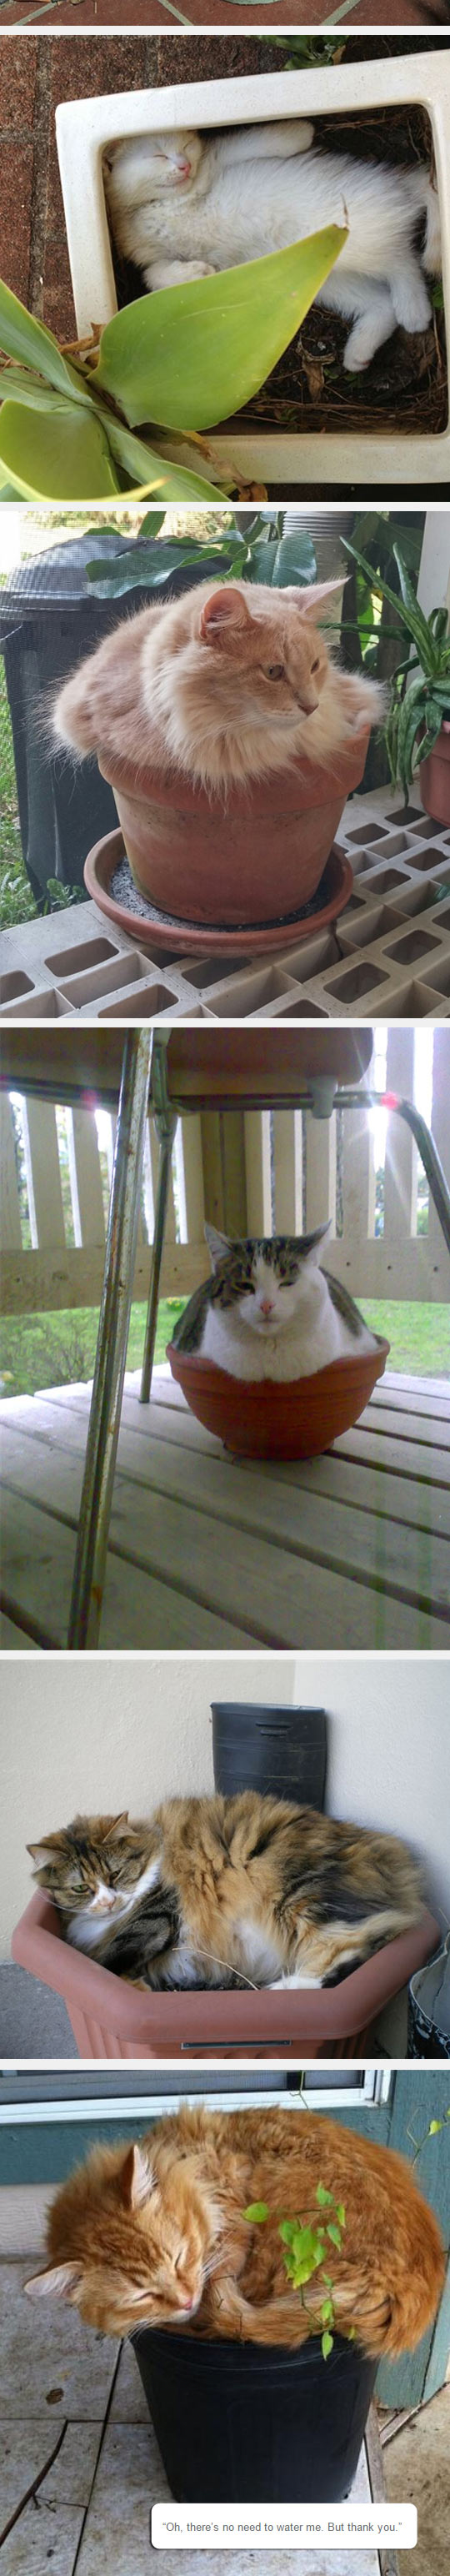 funny-cat-pot-plant-sitting-back-yard